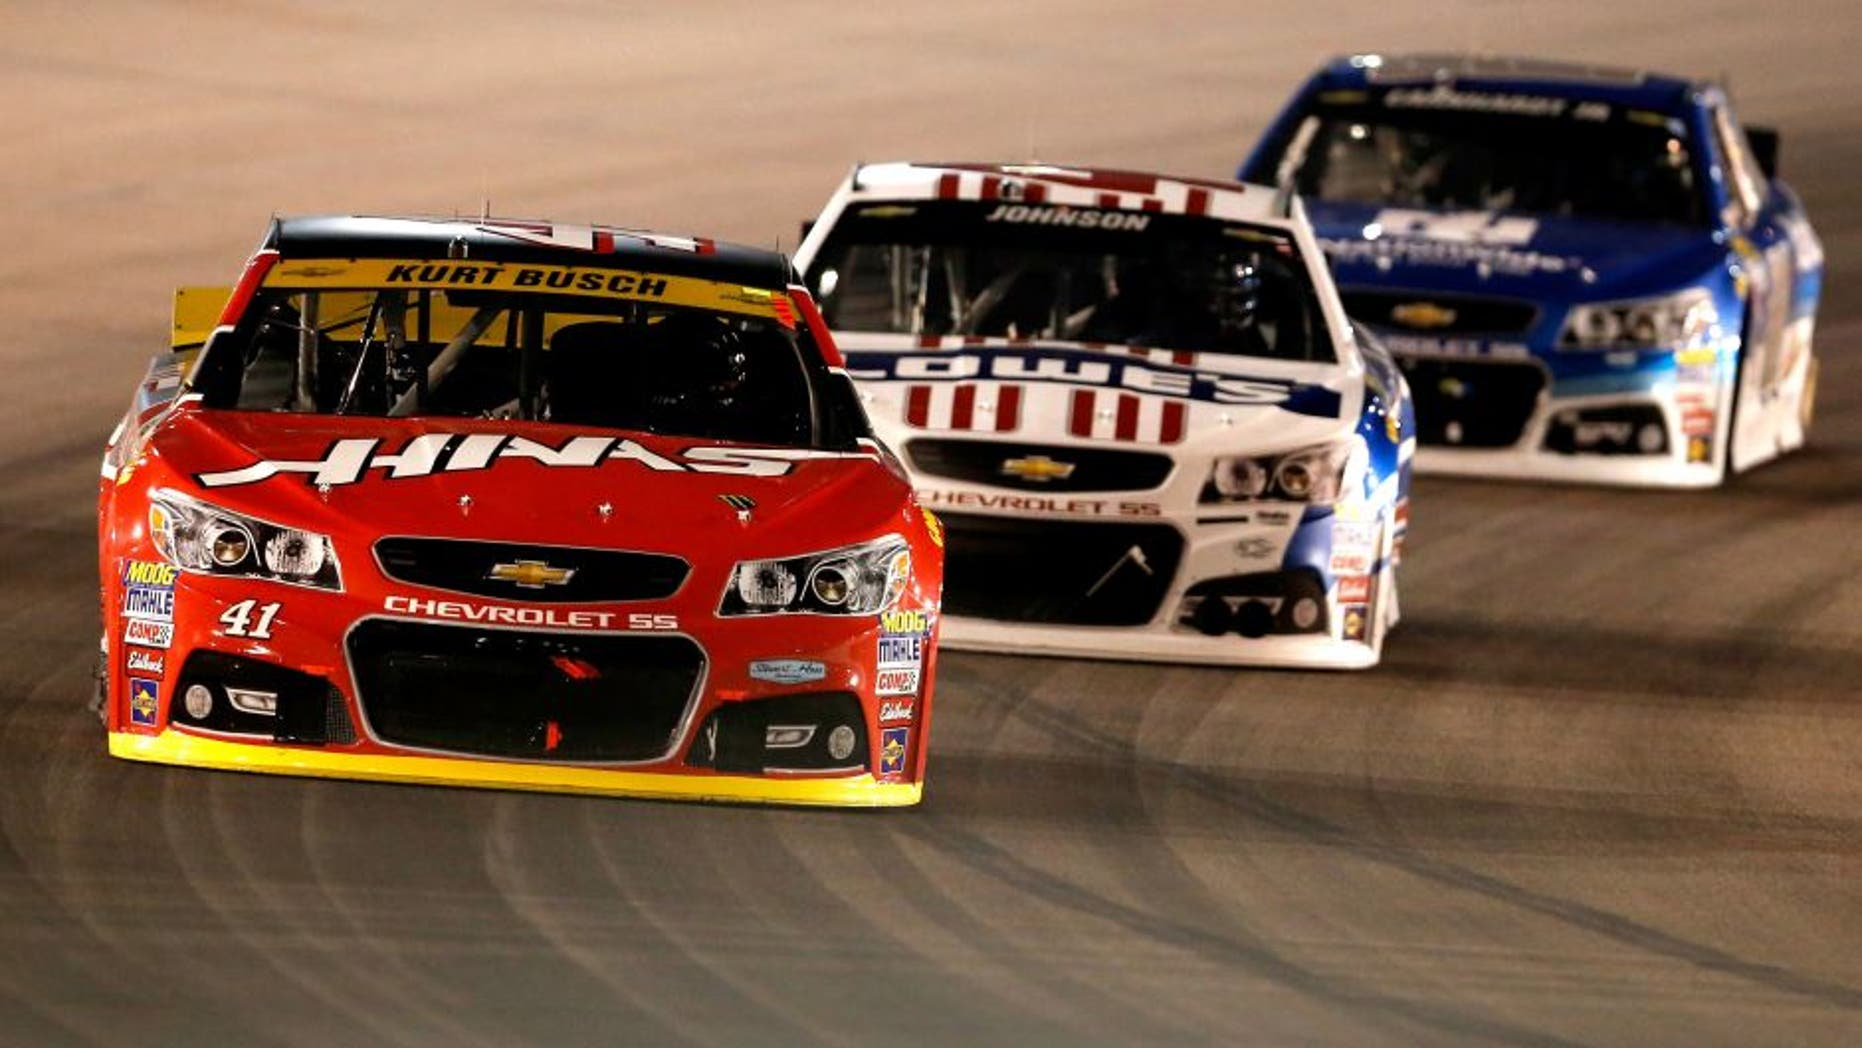 AVONDALE, AZ - NOVEMBER 15: Kurt Busch, driver of the #41 Haas Automation Chevrolet, races Jimmie Johnson, driver of the #48 Lowe's Patriotic Chevrolet, and Dale Earnhardt Jr., driver of the #88 Nationwide Chevrolet, during the NASCAR Sprint Cup Series Quicken Loans Race for Heroes 500 at Phoenix International Raceway on November 15, 2015 in Avondale, Arizona. (Photo by Christian Petersen/Getty Images)